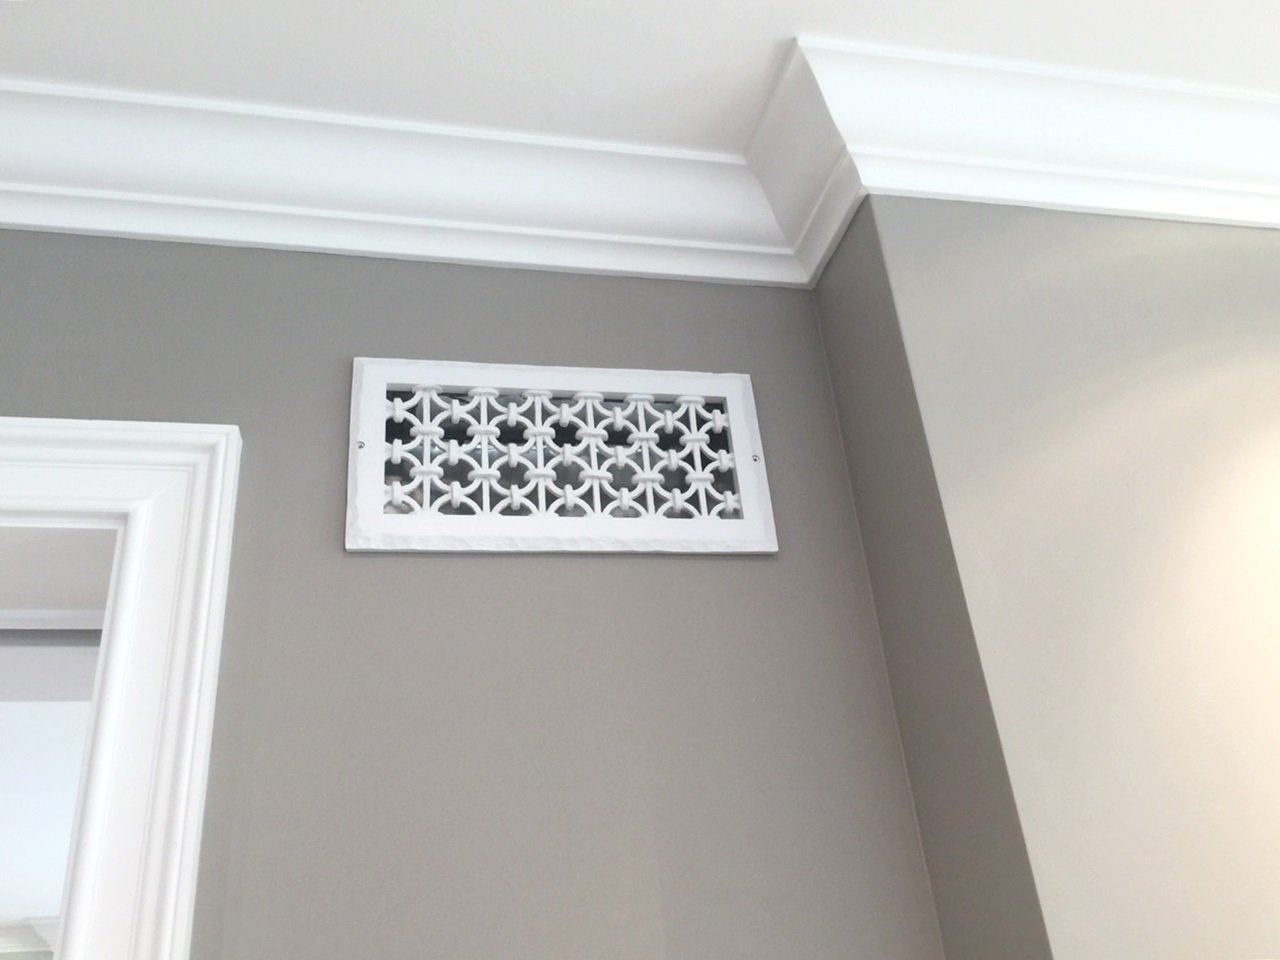 Decorative Return Air Vent Cover Decorative Vent Cover For A 16x8 Opening Resin Paint Grade Grille